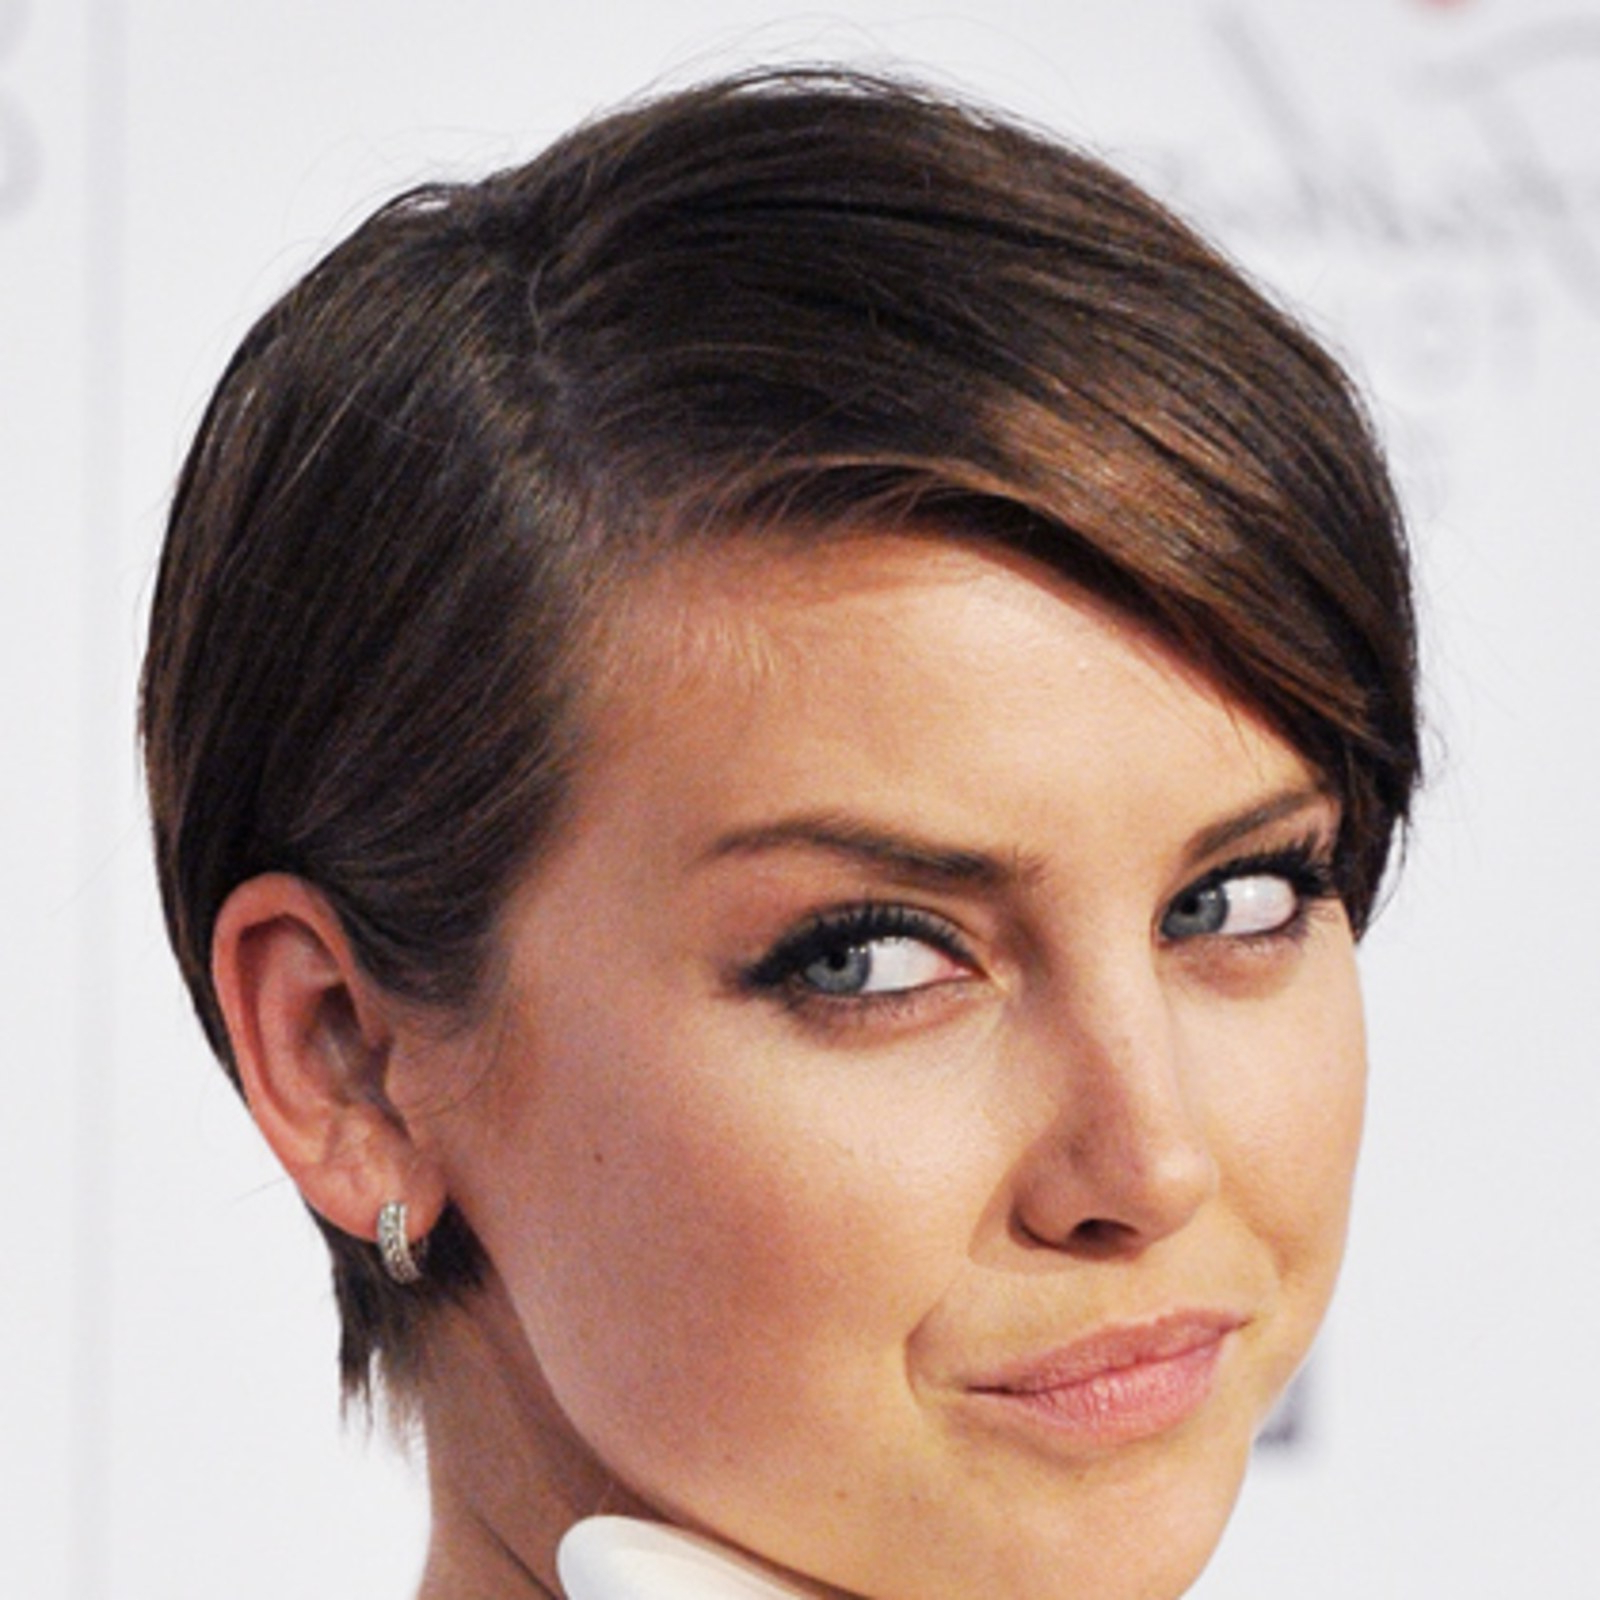 The Top 8 Haircuts For Heart Shaped Faces – Allure Intended For Short Hairstyles For Heart Shaped Faces (View 4 of 25)